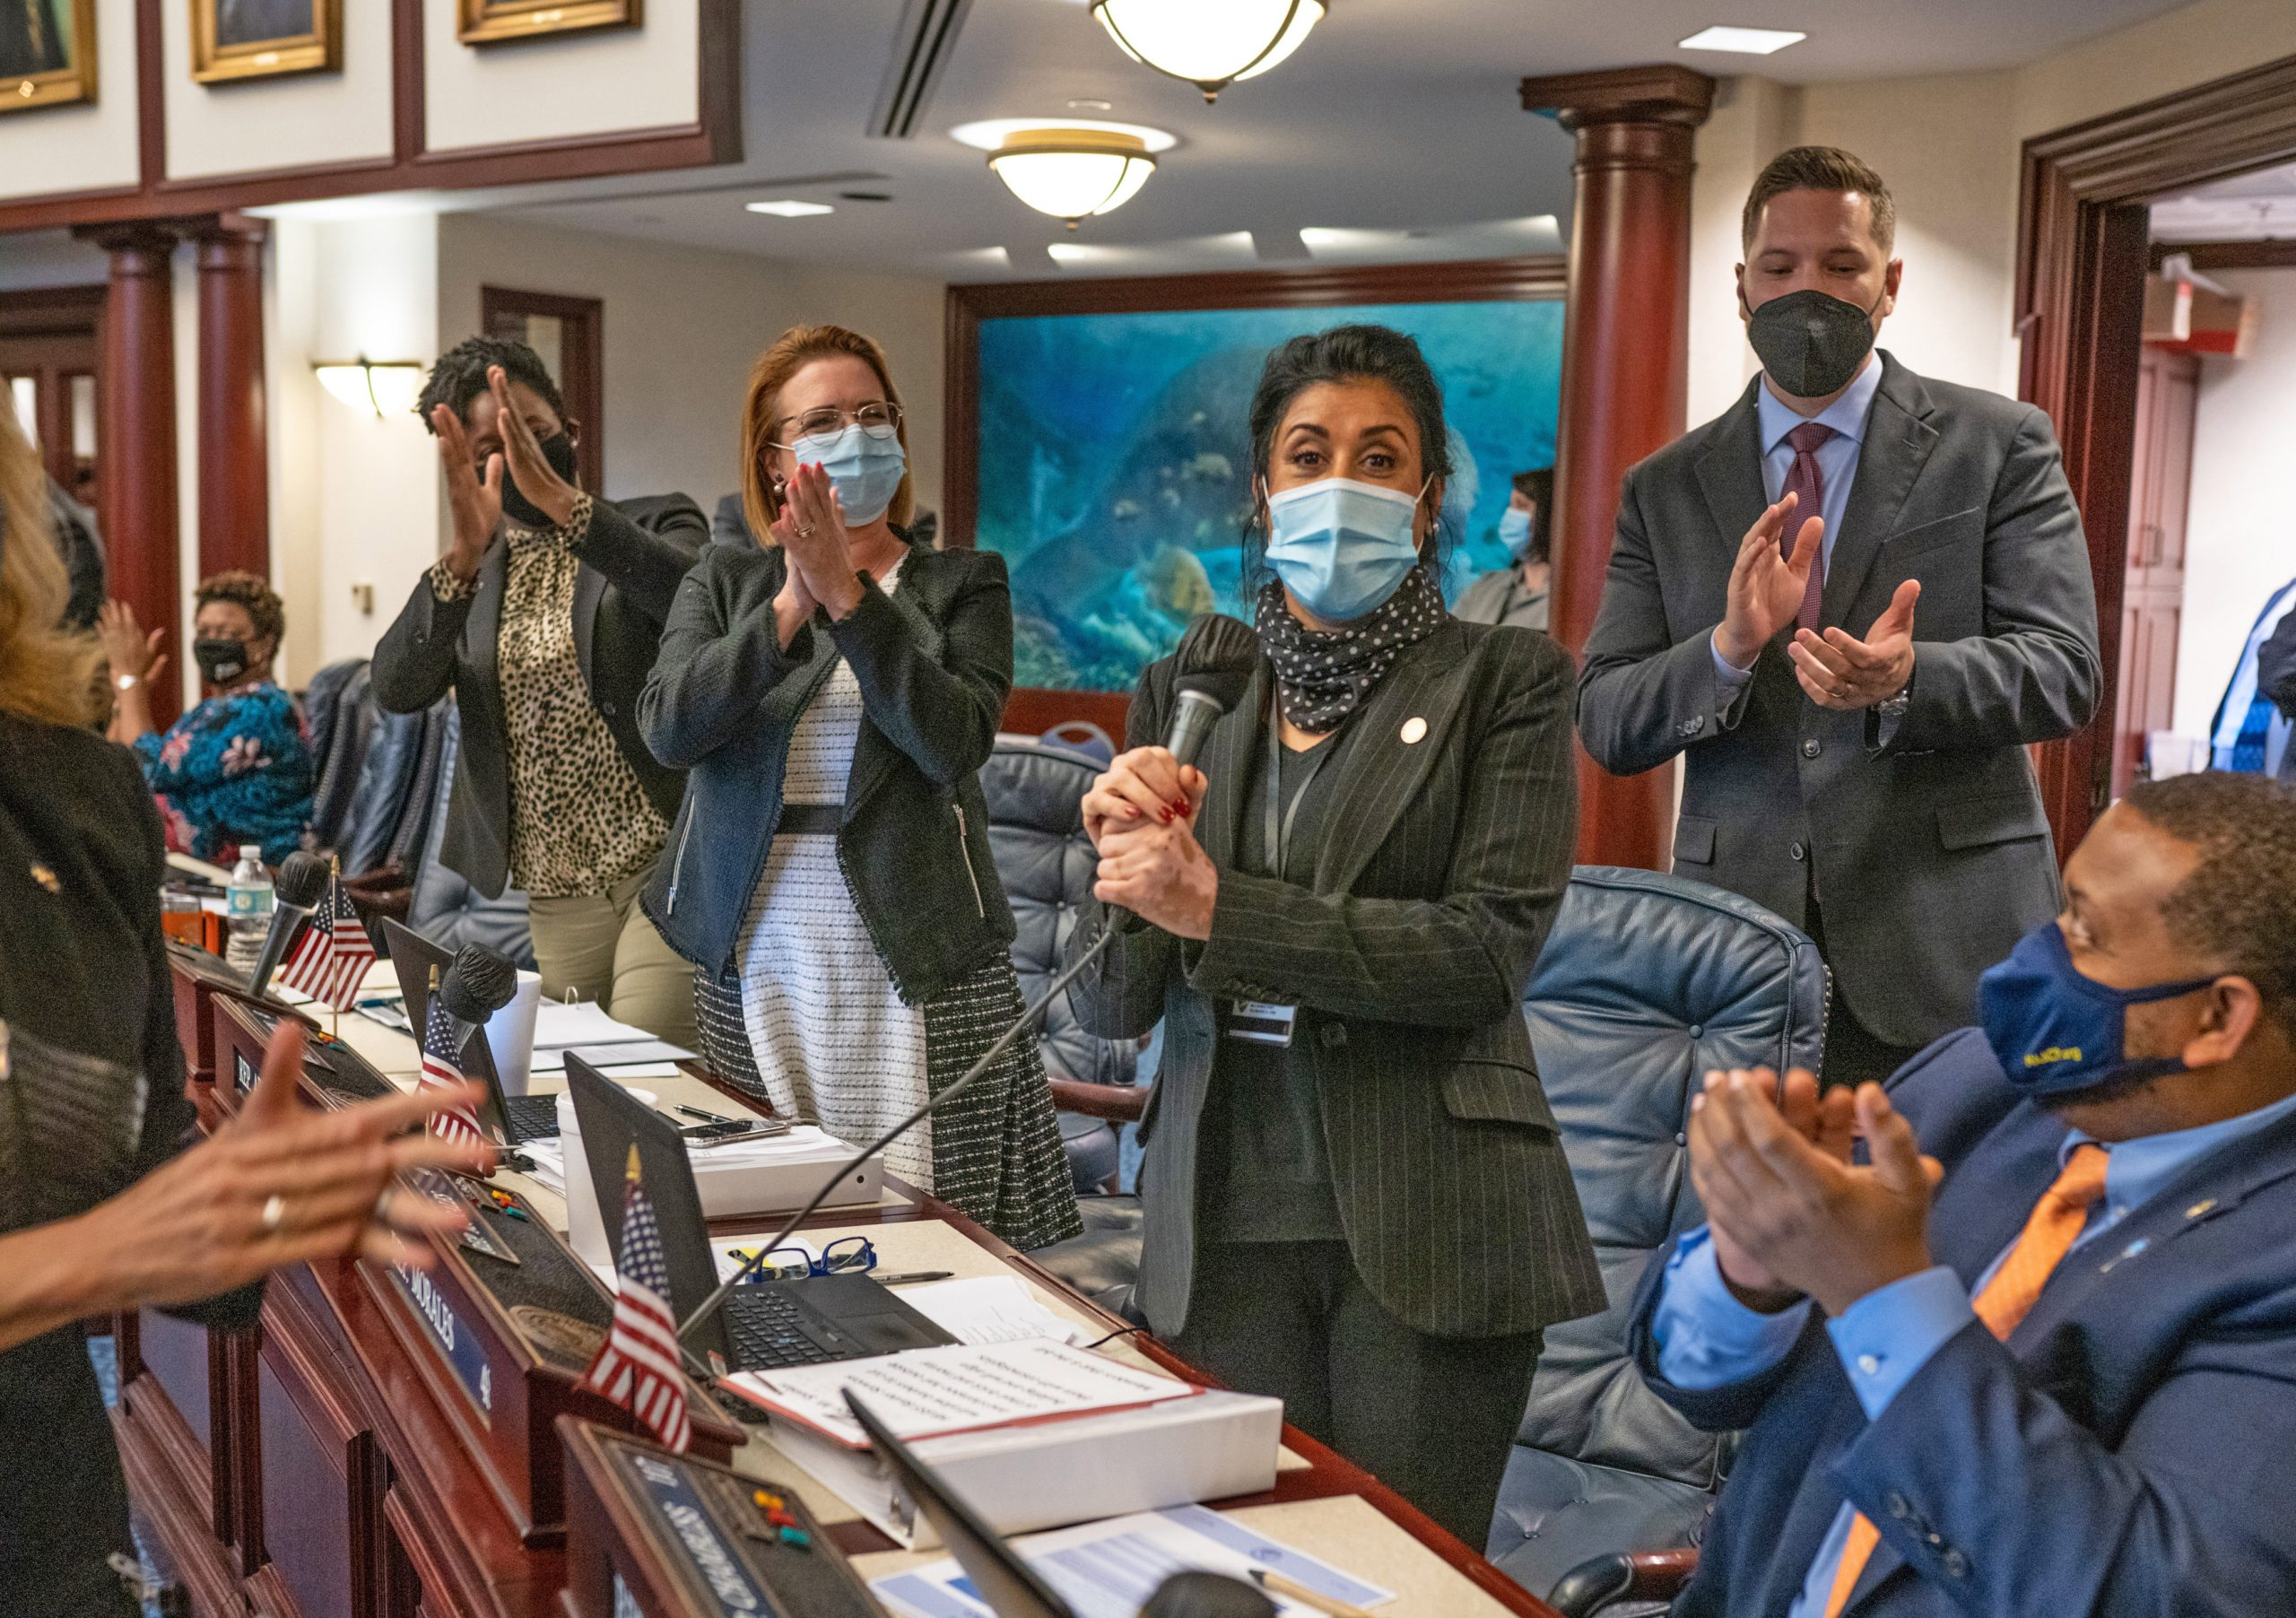 State Represntative Daisy Morales (center, holding microphone) garners bipartisan applause at the moment her Barber Services bill unanimously passes the Florida House. Photo: Florida House of Representatives.